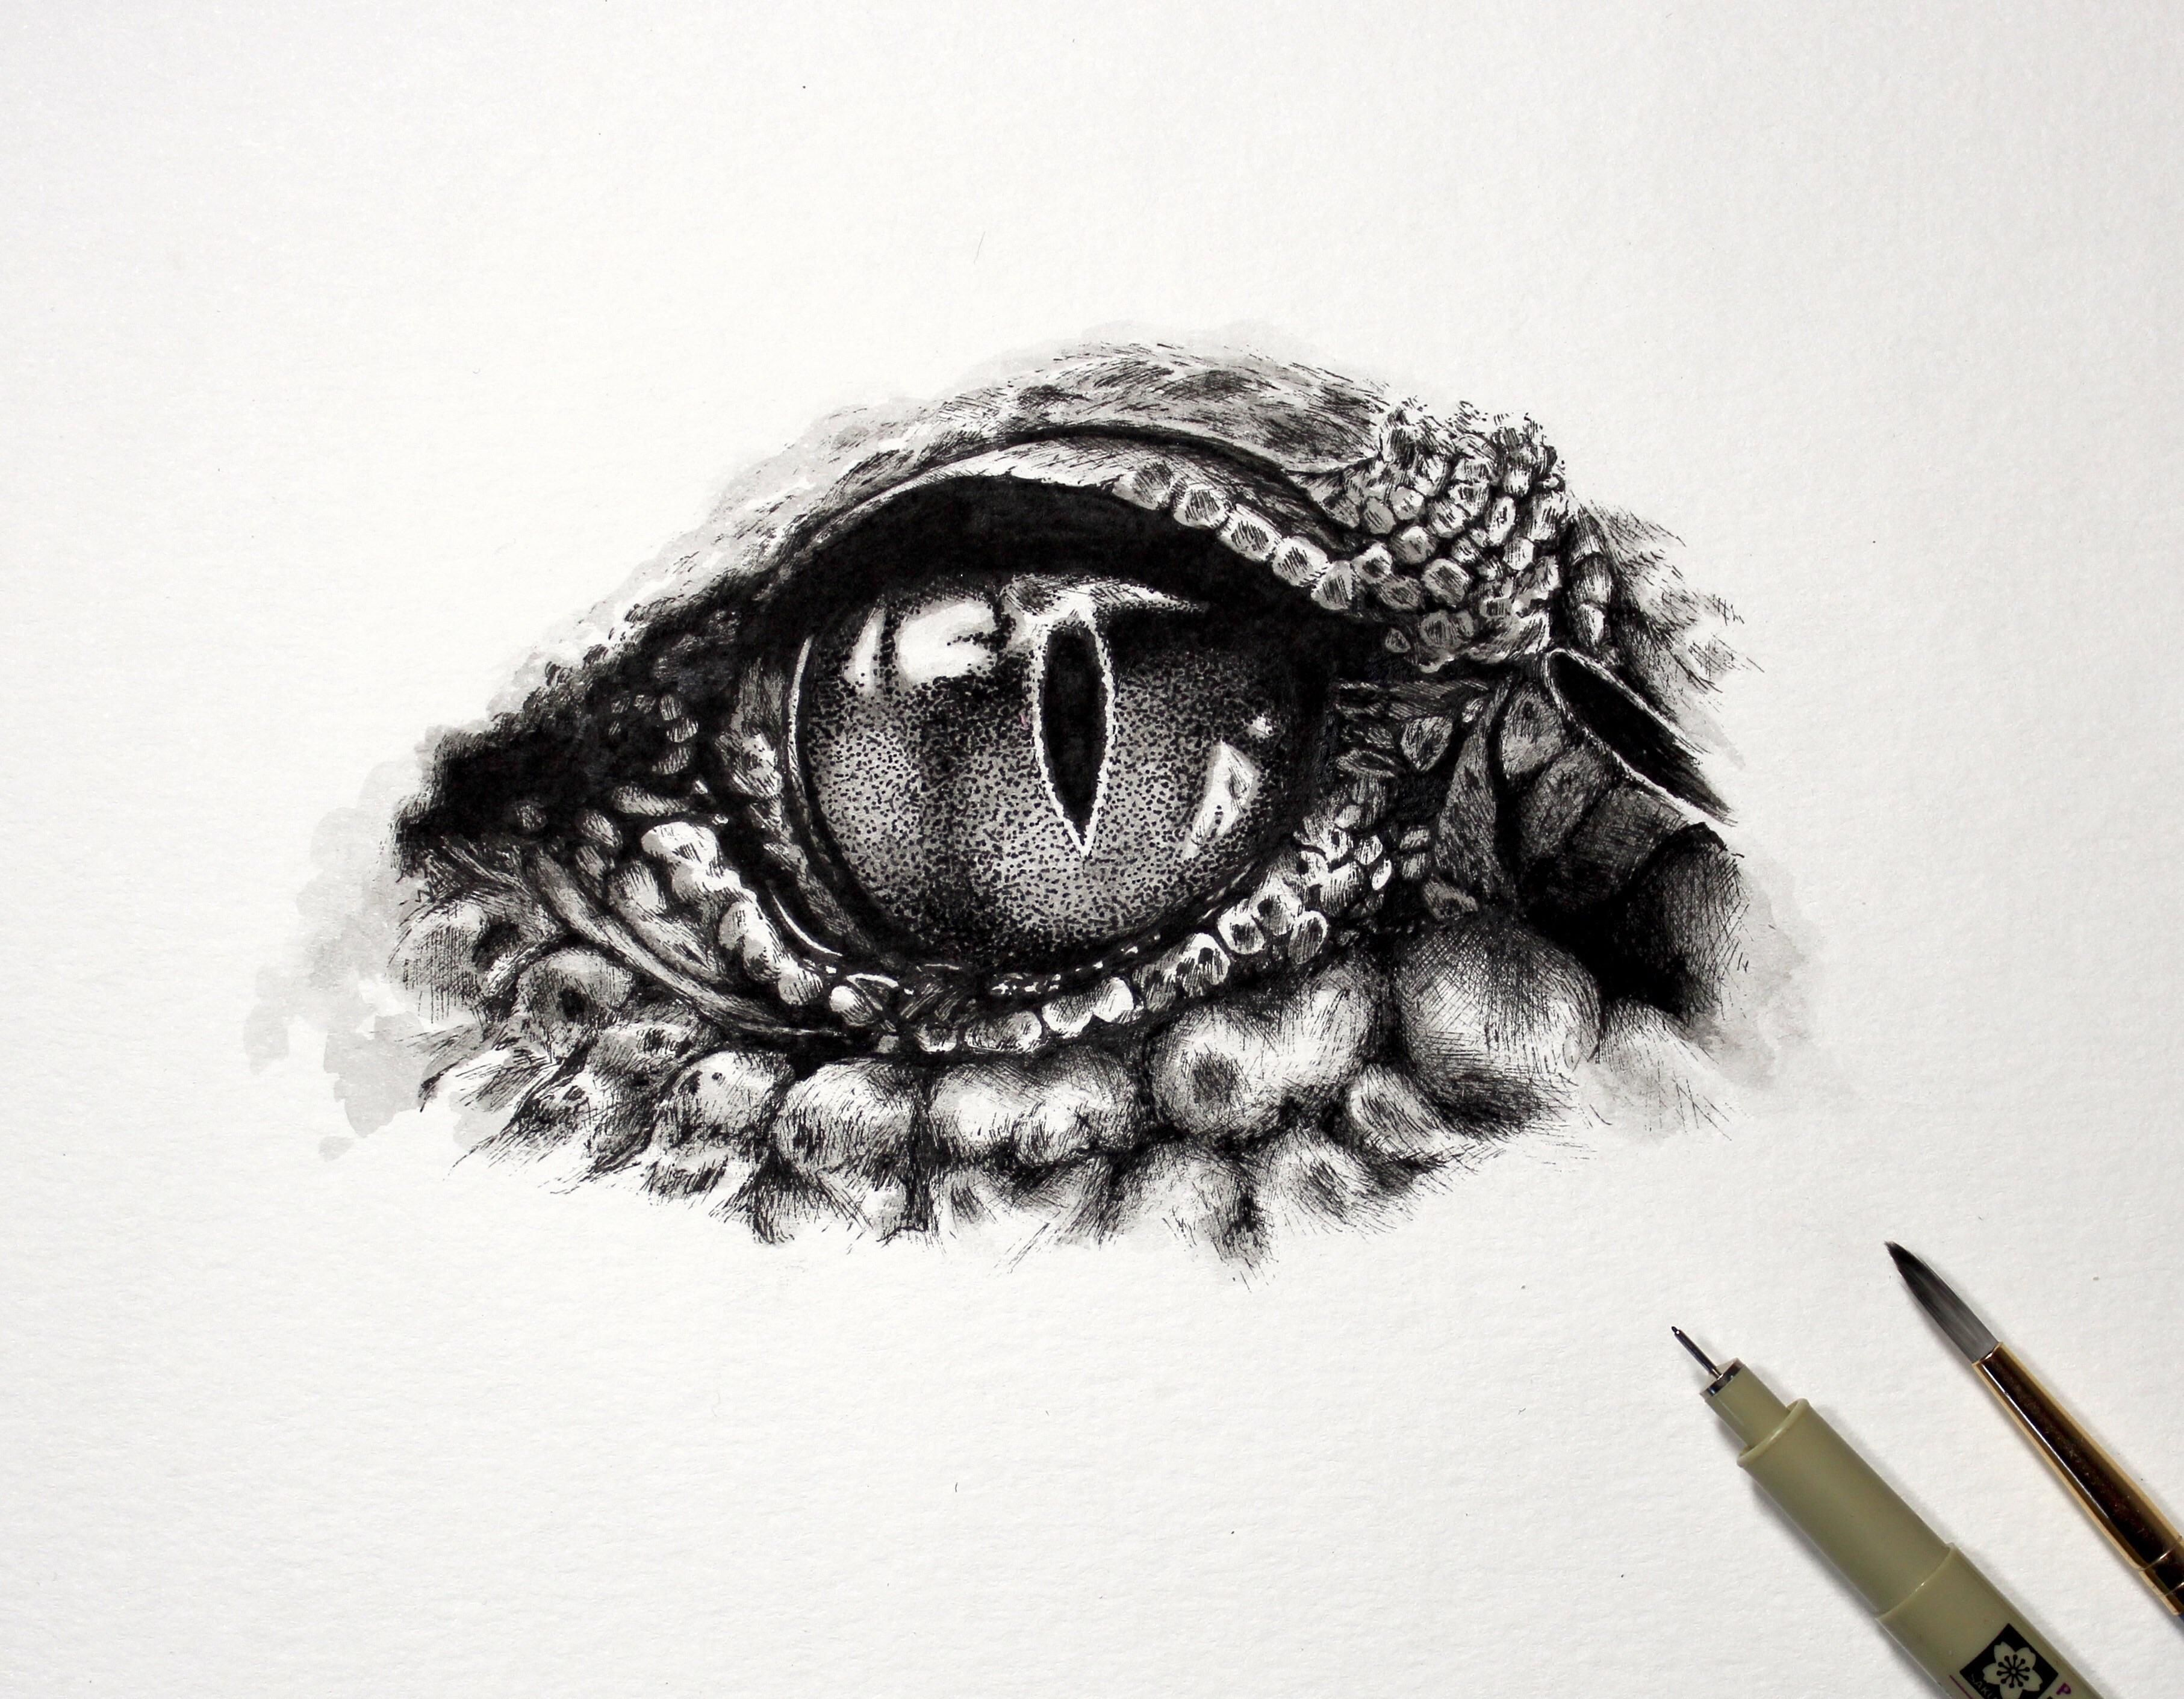 Crocodile eye with .005 micron pen and watercolor for